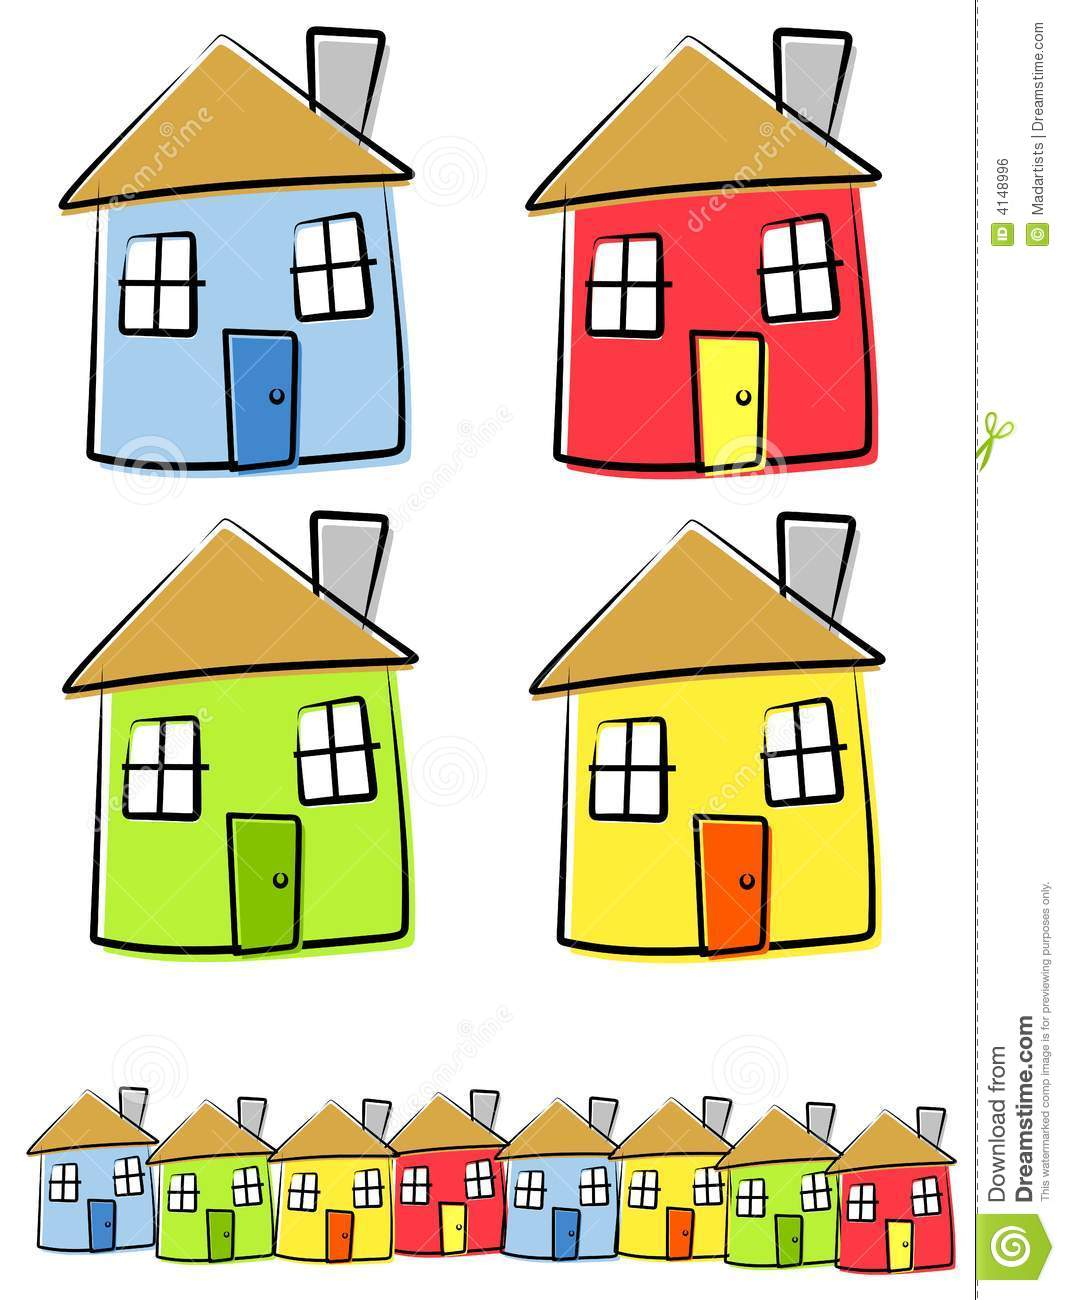 Childlike drawings of houses stock vector illustration for Draw your house